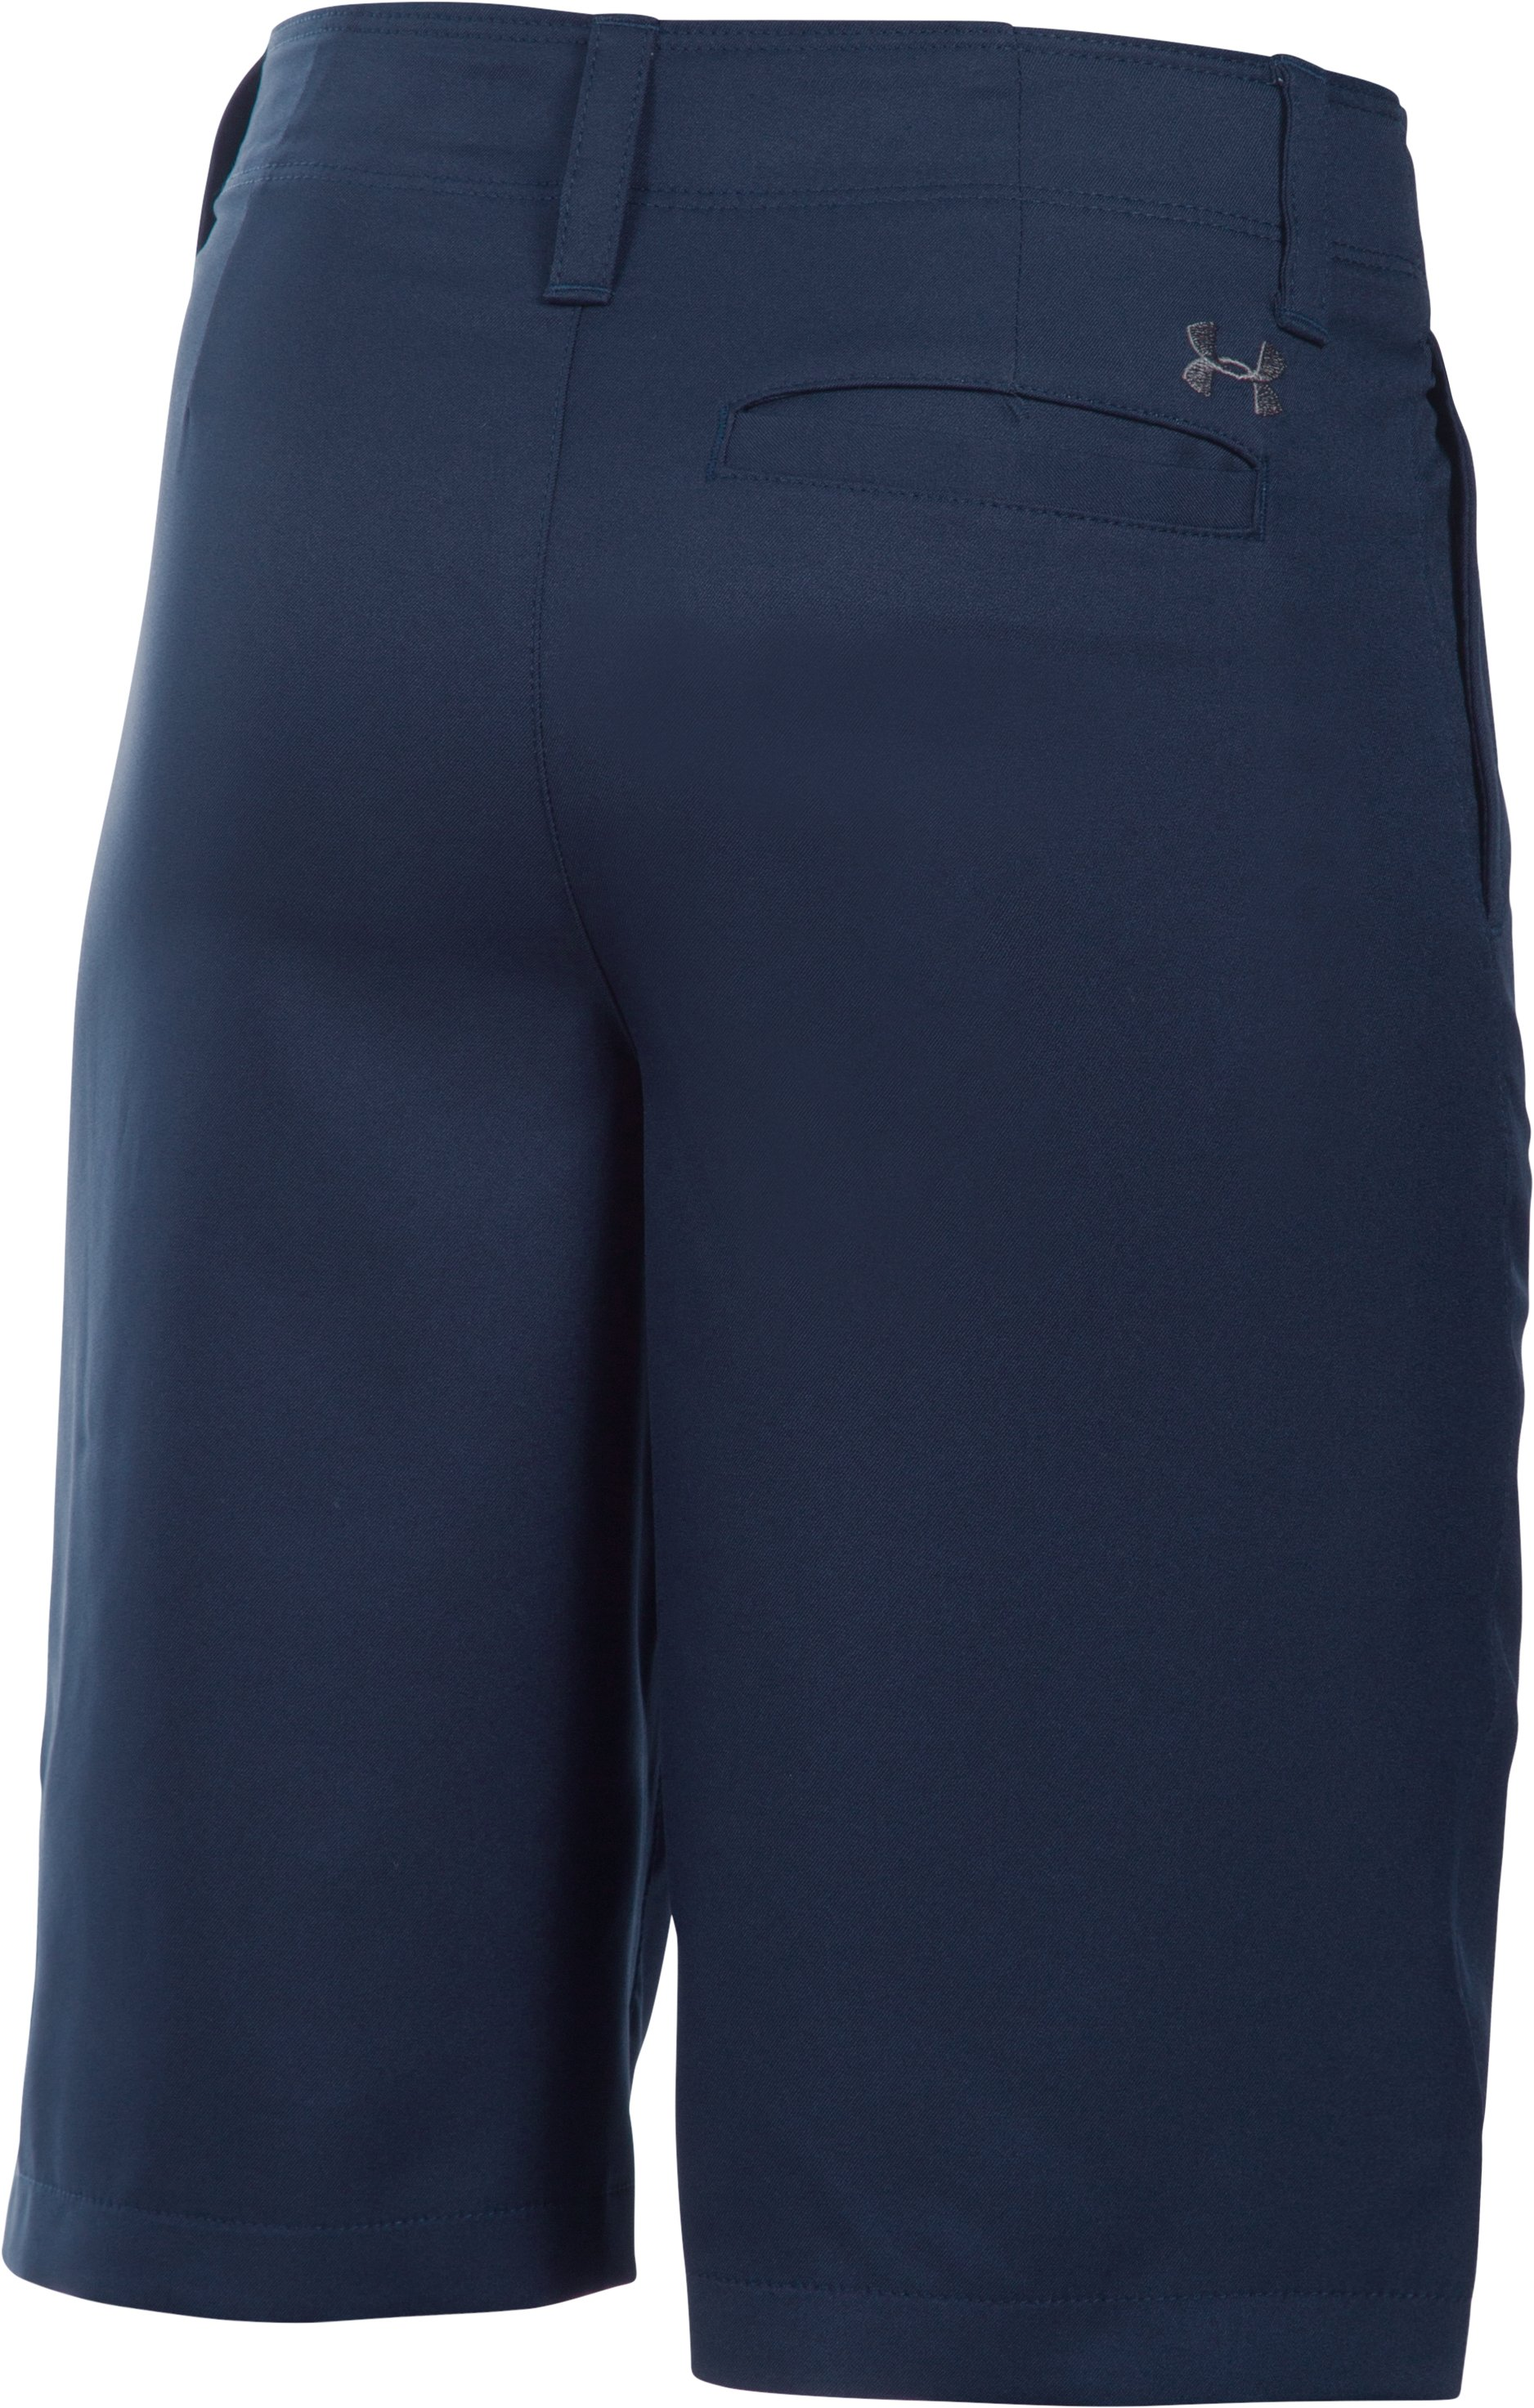 Boys' UA Medal Play Golf Shorts , Midnight Navy